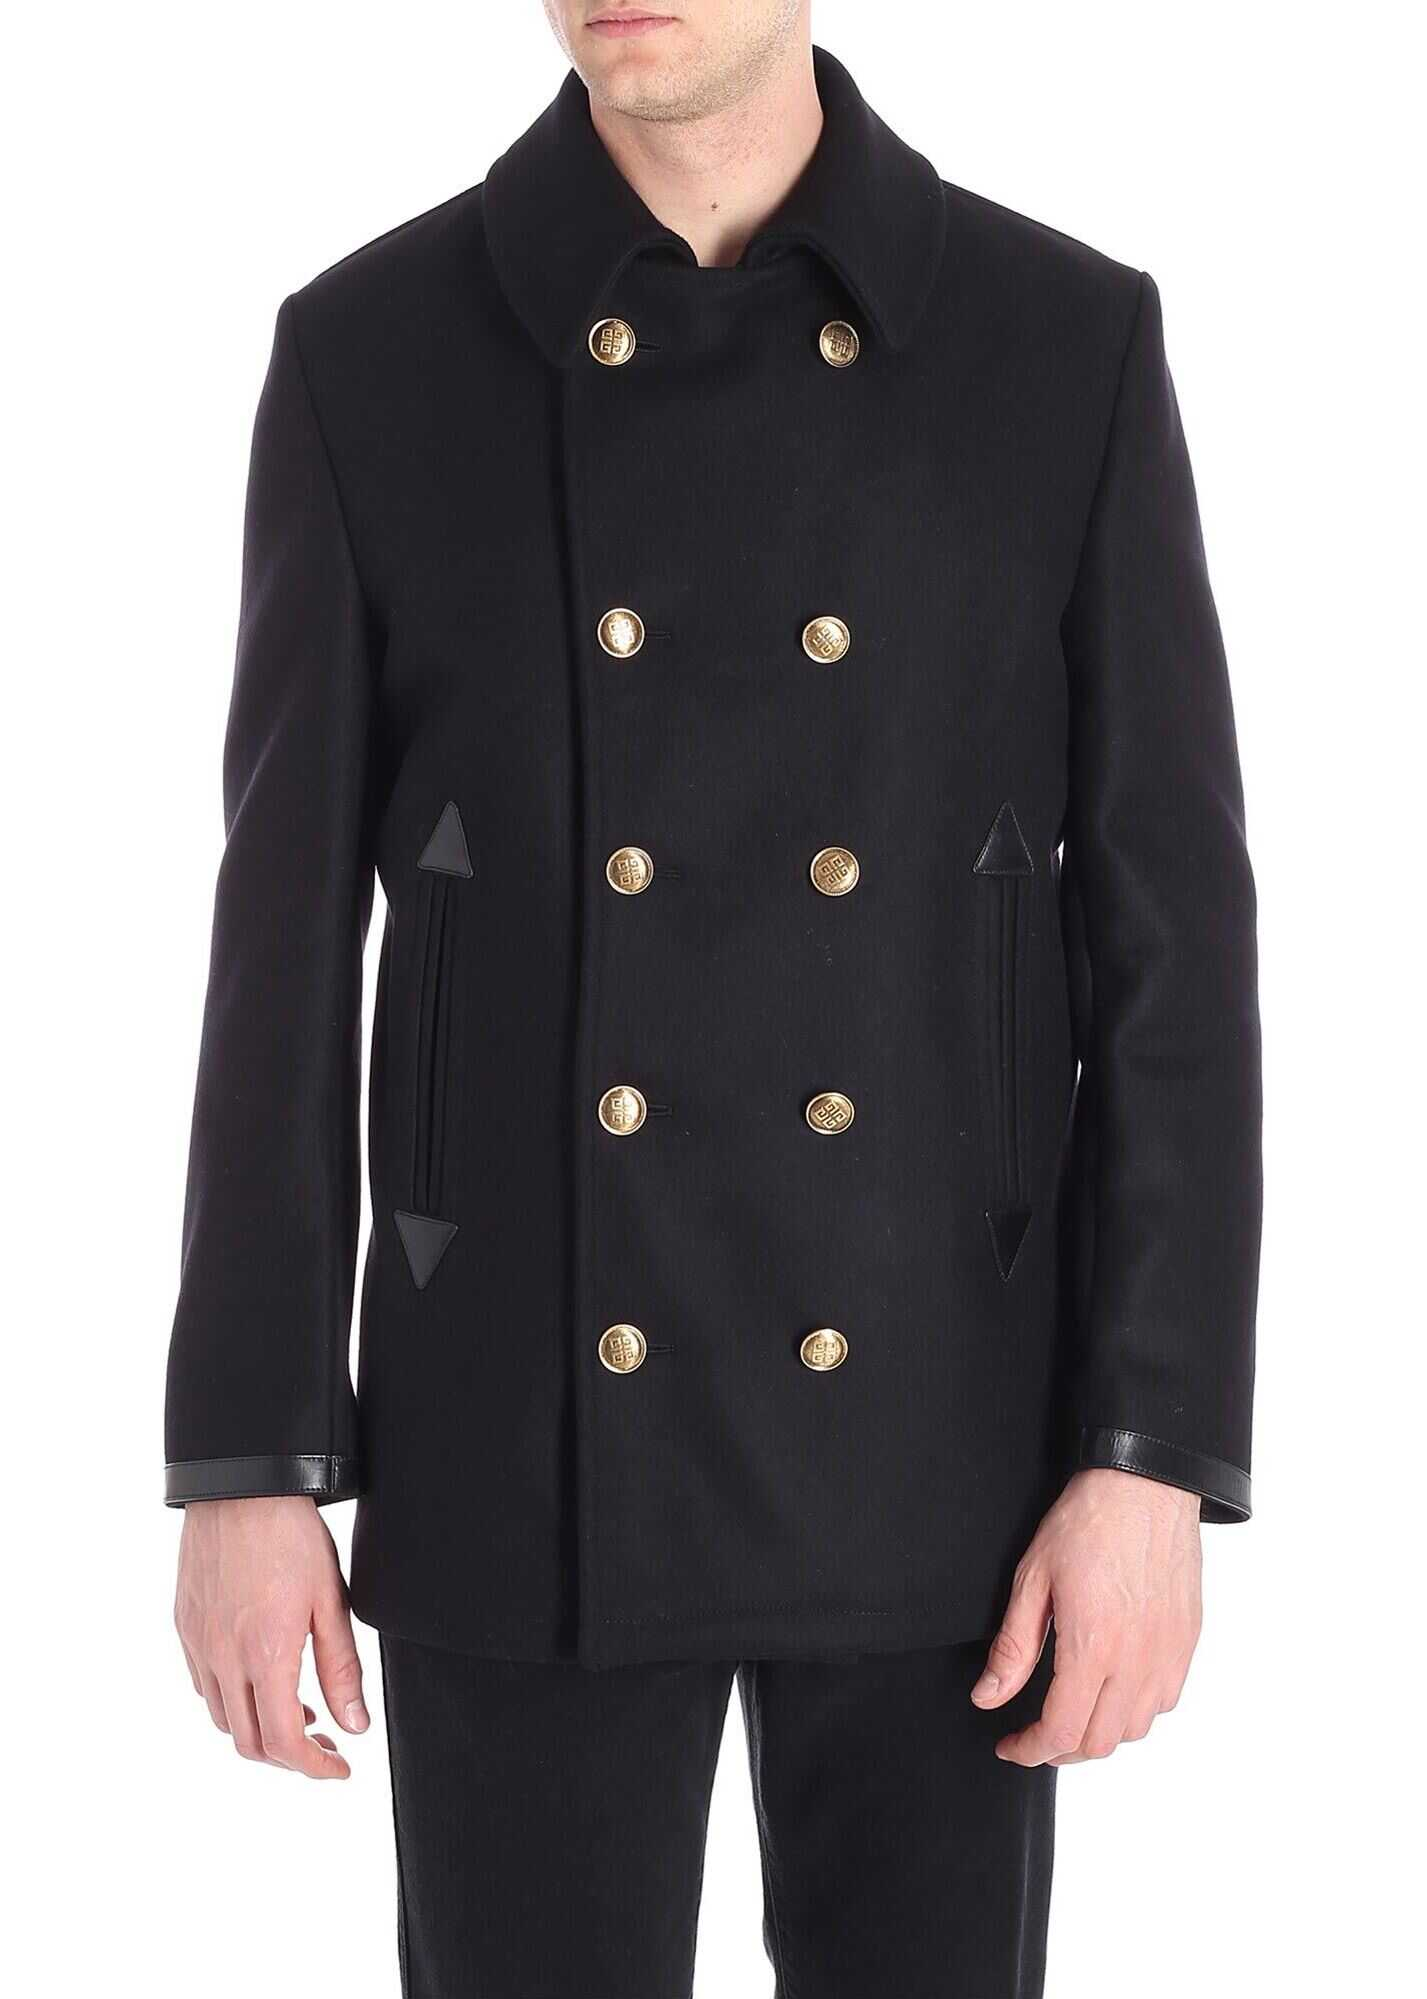 Givenchy Black Coat With 4G Buttons Black